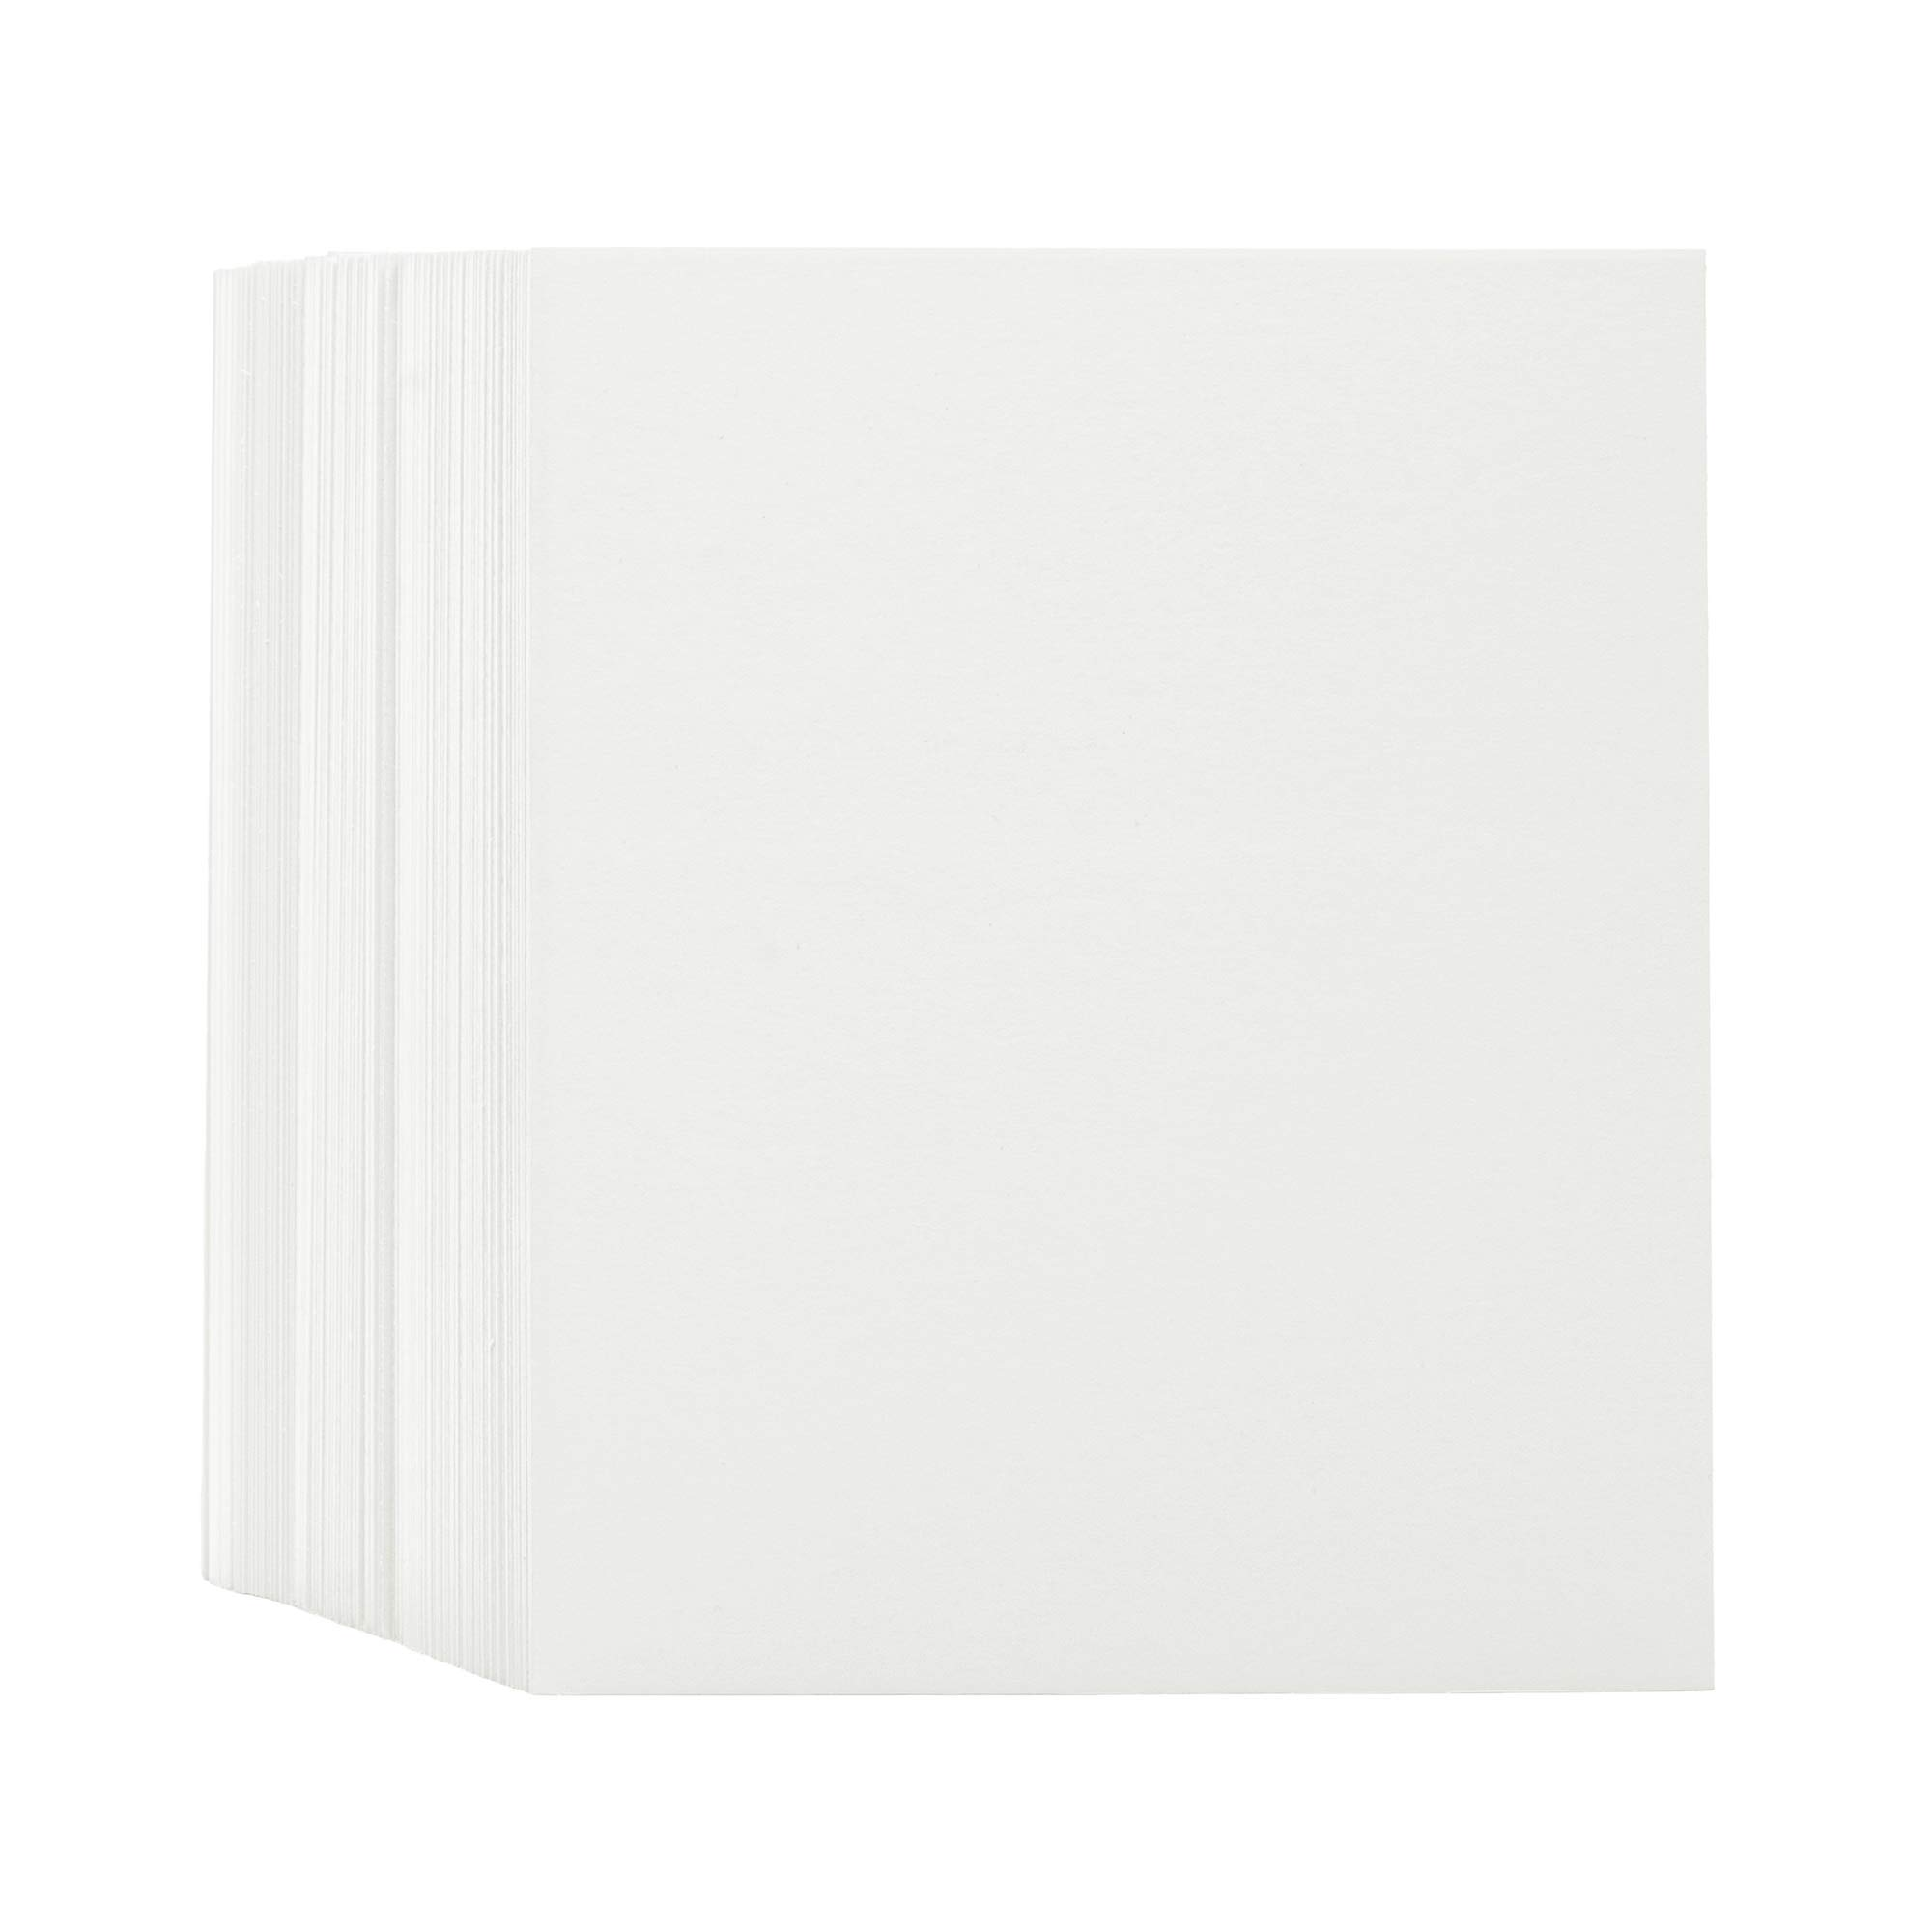 Pack of 50 11'' x 14'' Inch Pre-Cut White Backing Boards for Picture Mats Mattes, Photos and Frames - Backing Only (11 x 14 50-Pack Backs Only) by iFrame